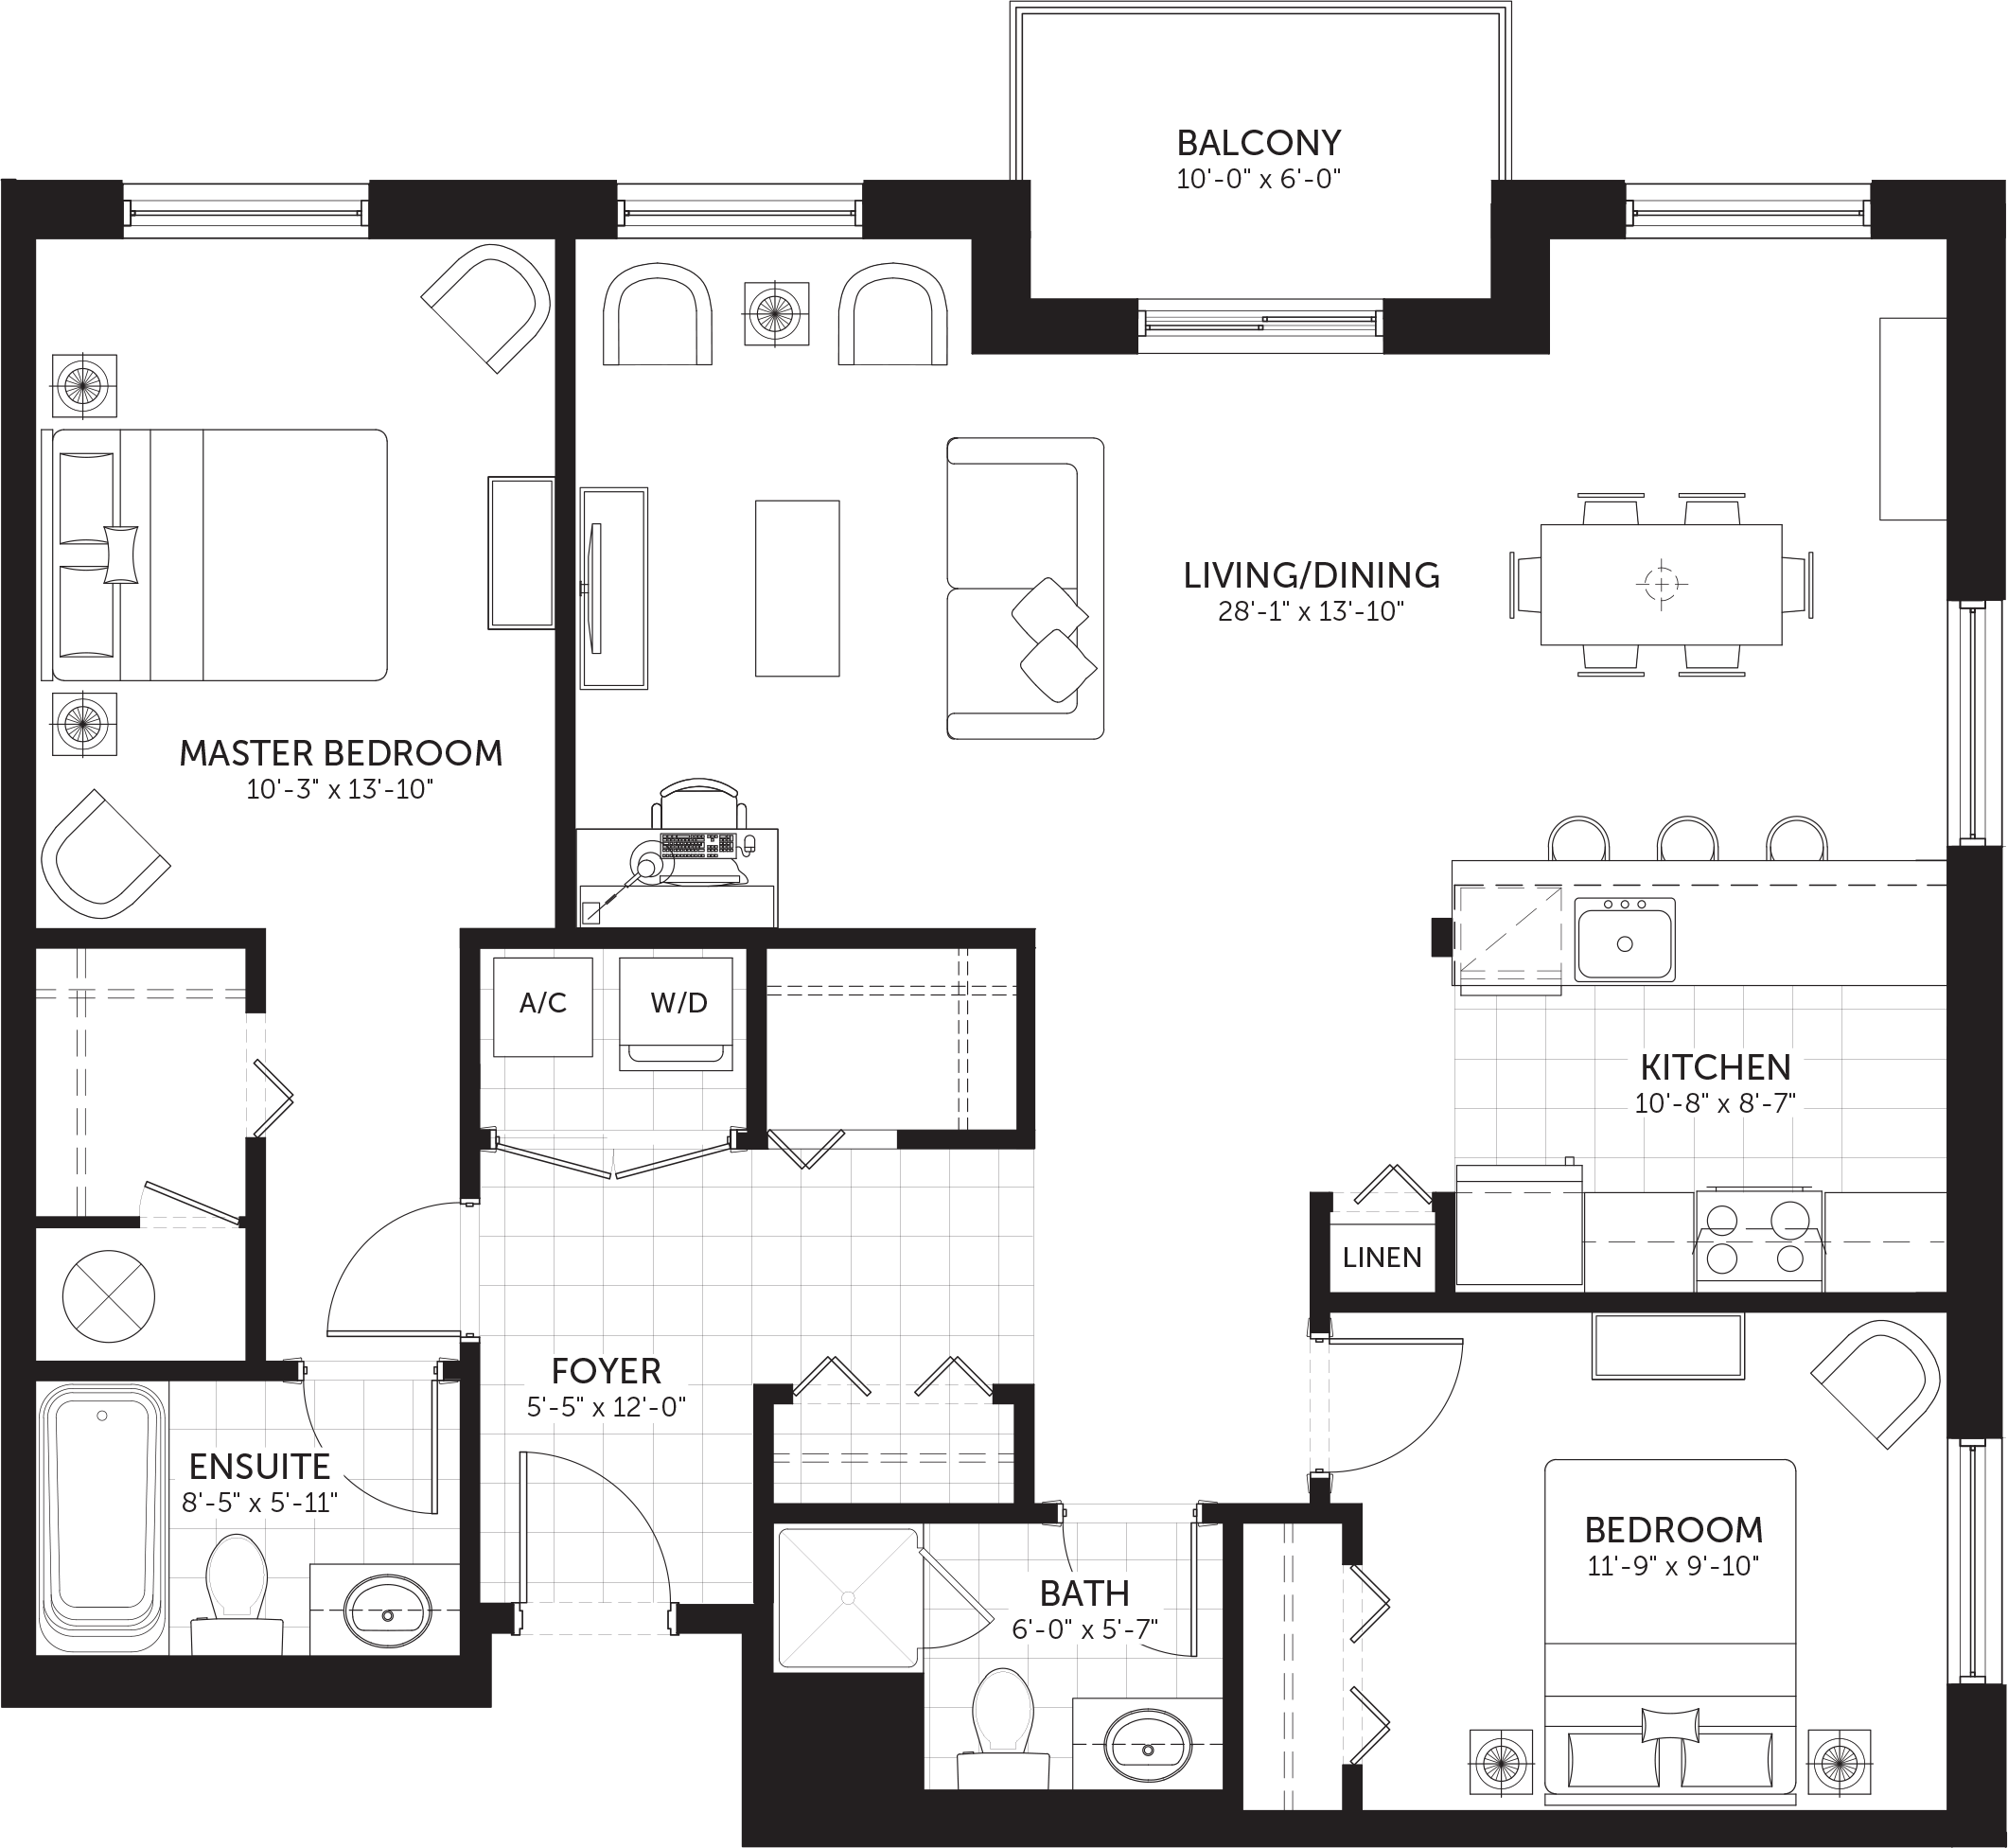 Hunt Club Flats The Strathcona Condo Floor Plans